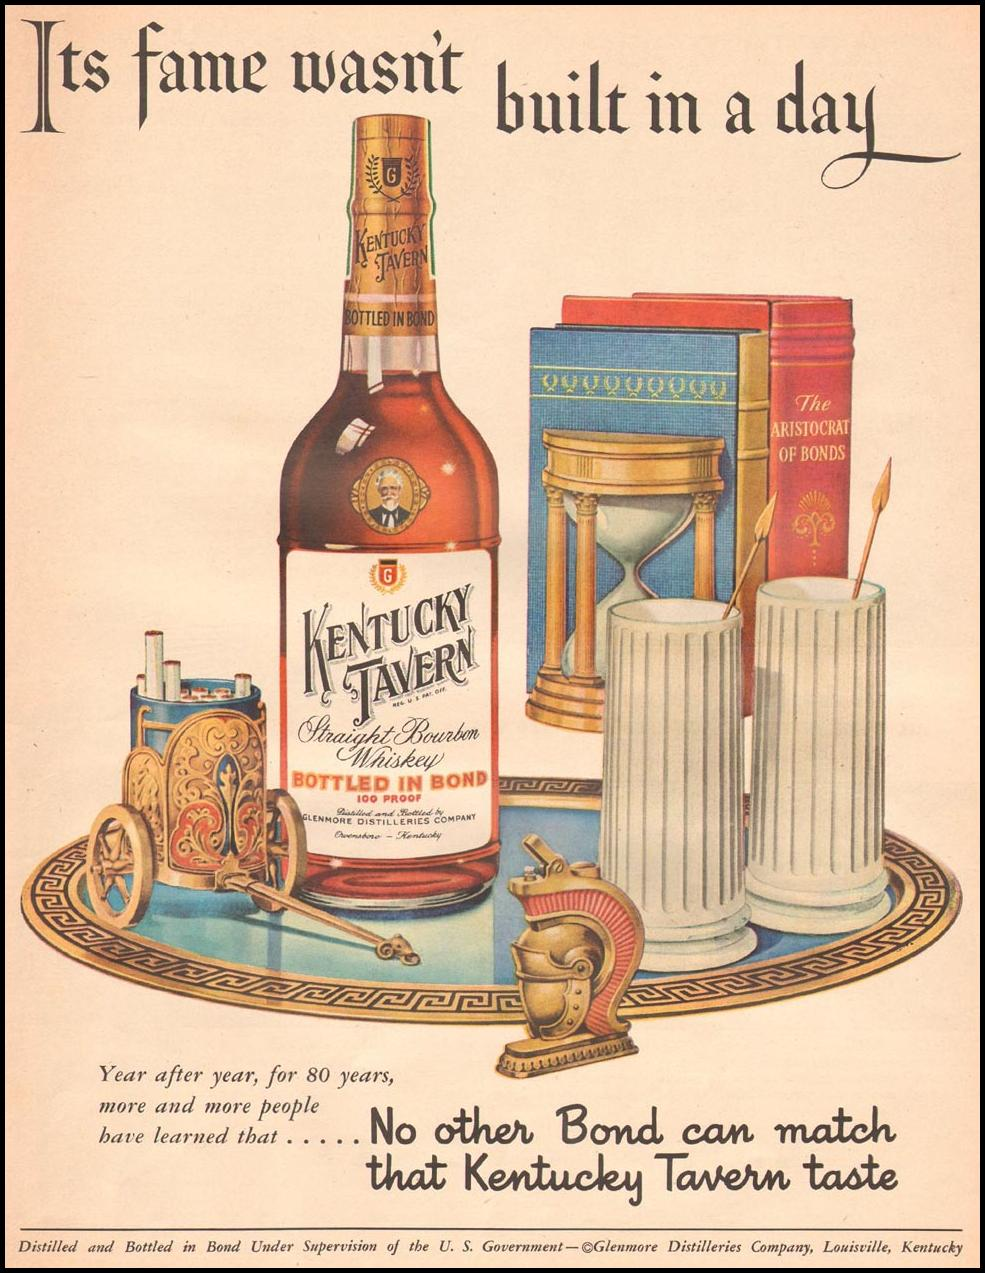 KENTUCKY TAVERN STRAIGHT BOURBON WHISKEY LIFE 09/03/1951 p. 91